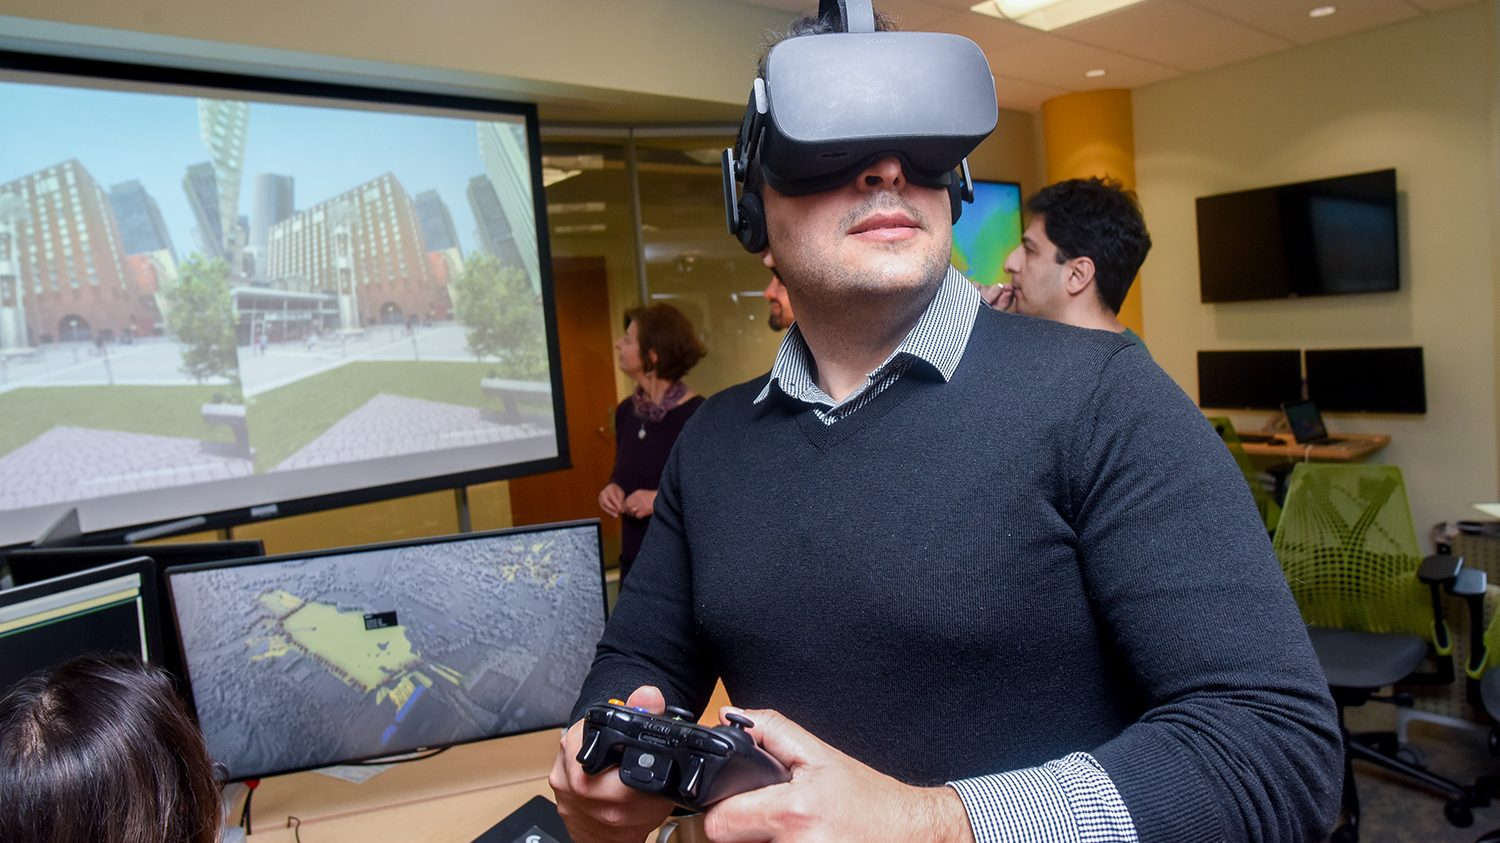 geospatial sciences virtual reality game